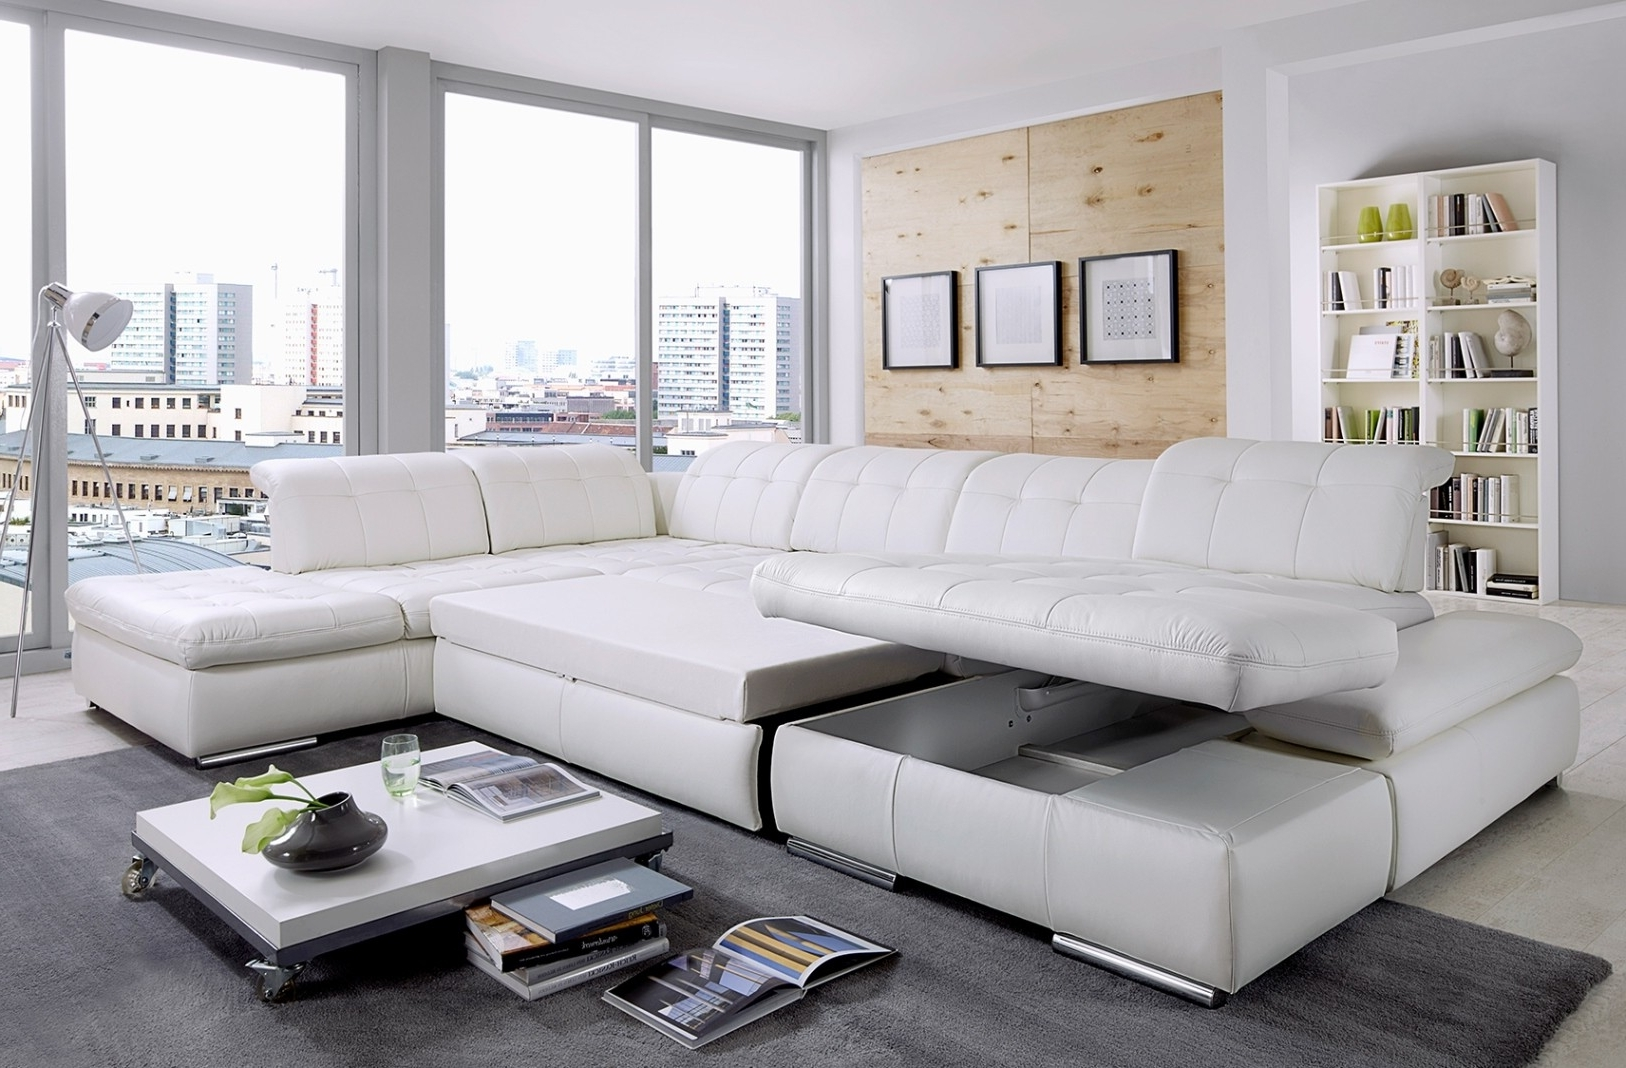 Best Modern Contemporary Furniture Stores Orlando Miami Florida Fl Intended For Trendy Nh Sectional Sofas (View 4 of 15)